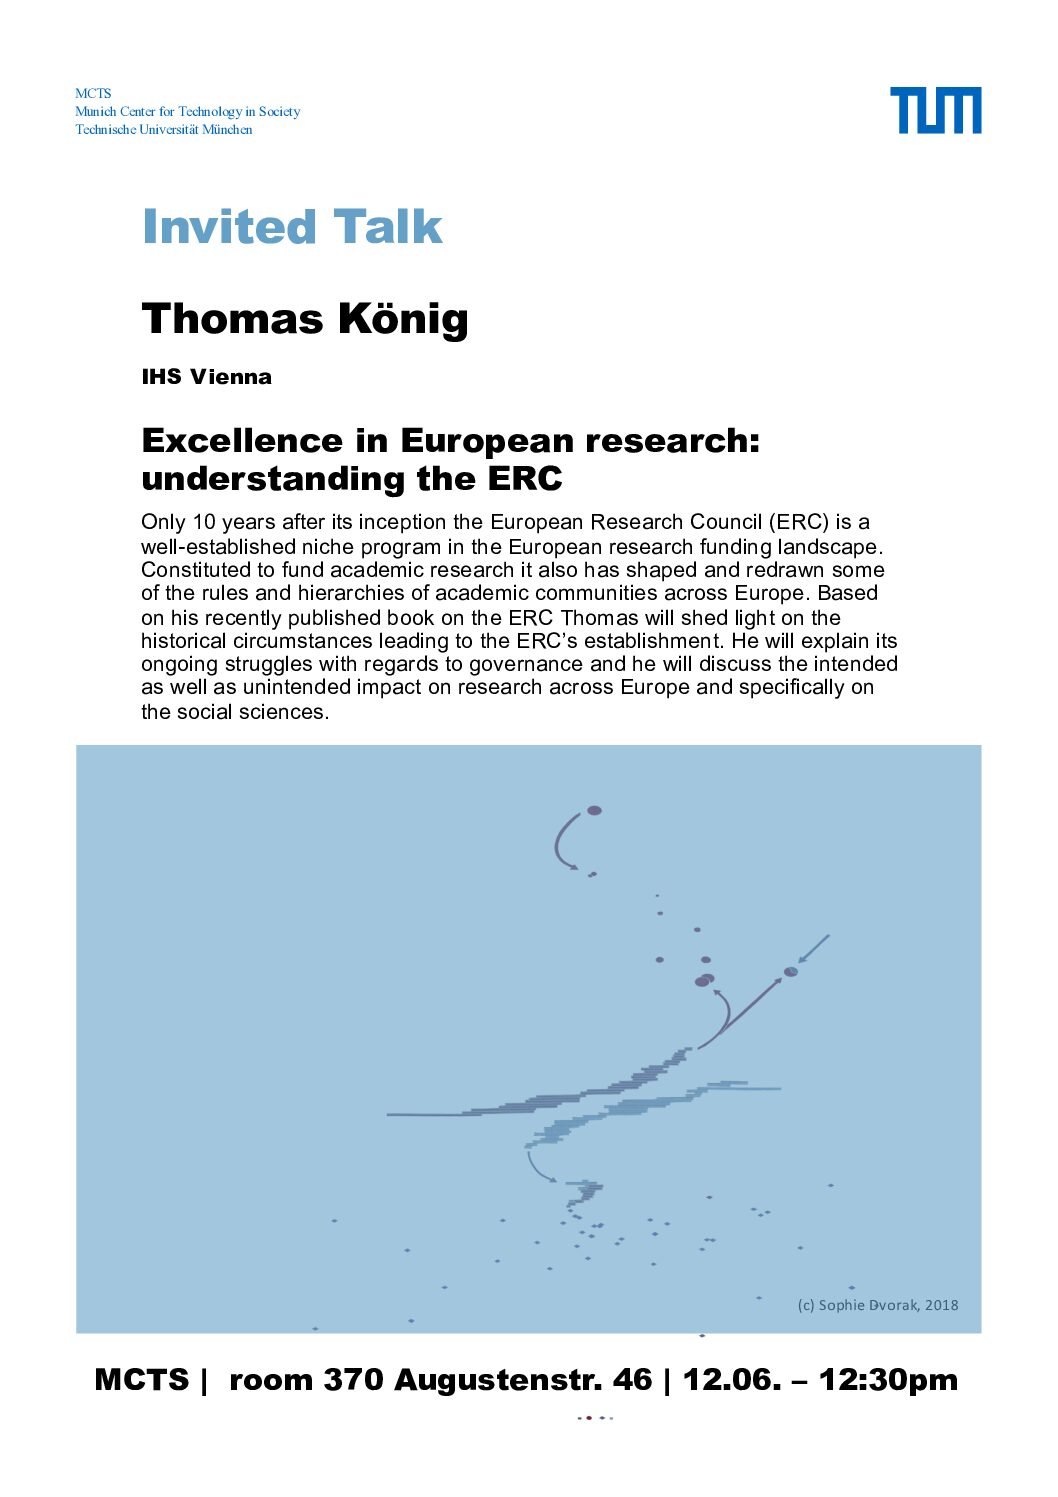 "Organisation des Vortrags: T. König: ""Excellence in European Research: Understanding the ERC"" am 12.06.2018"